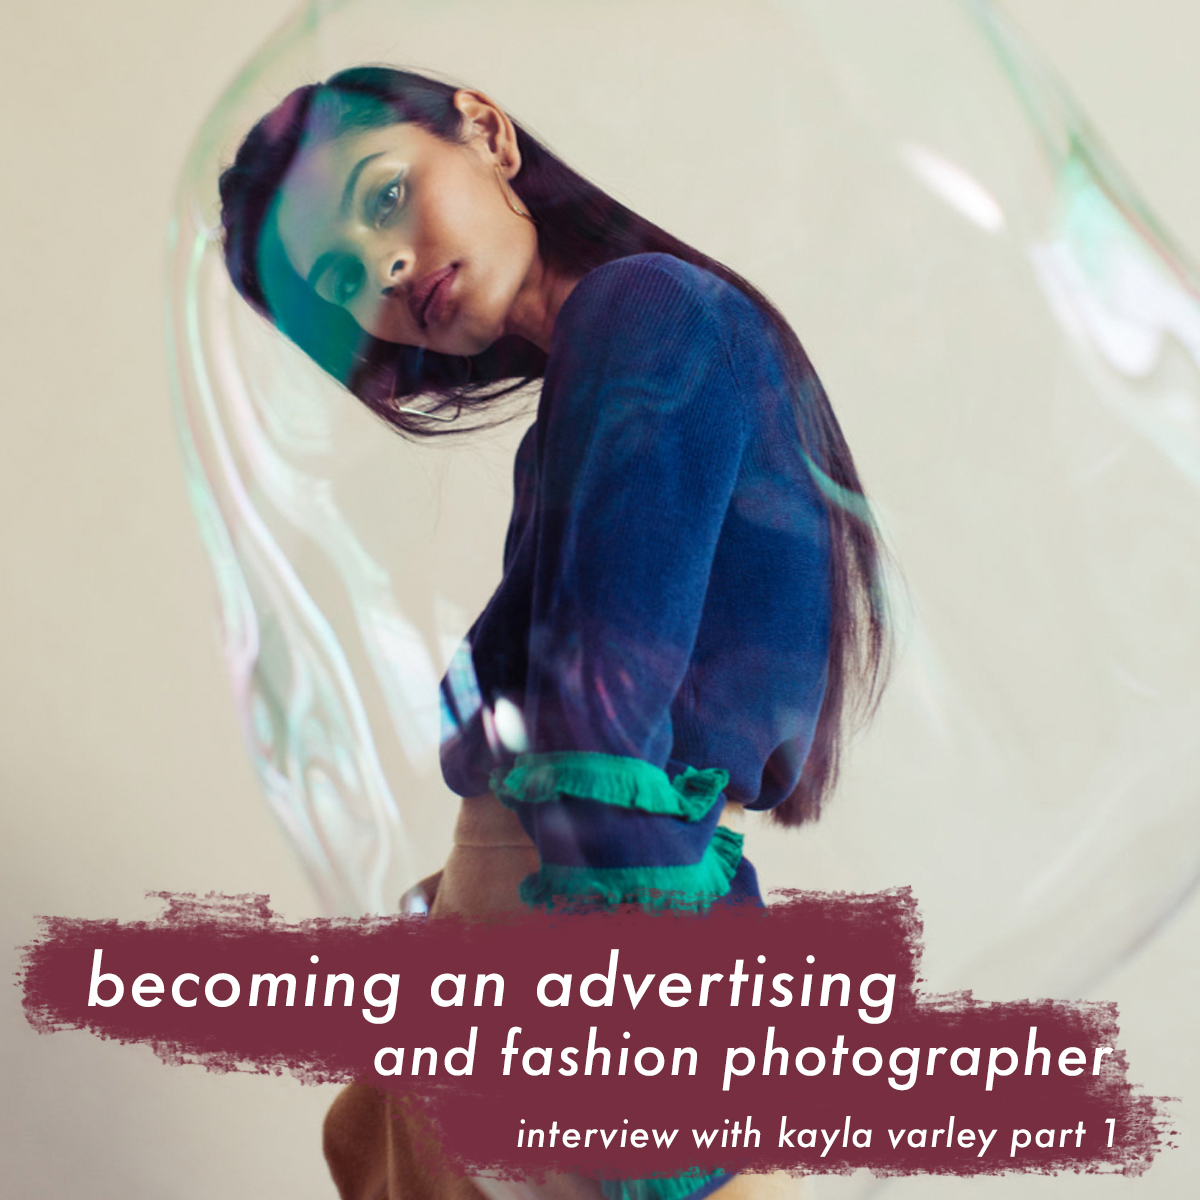 how-to-become-advertising-fashion-photographer-part1.jpg